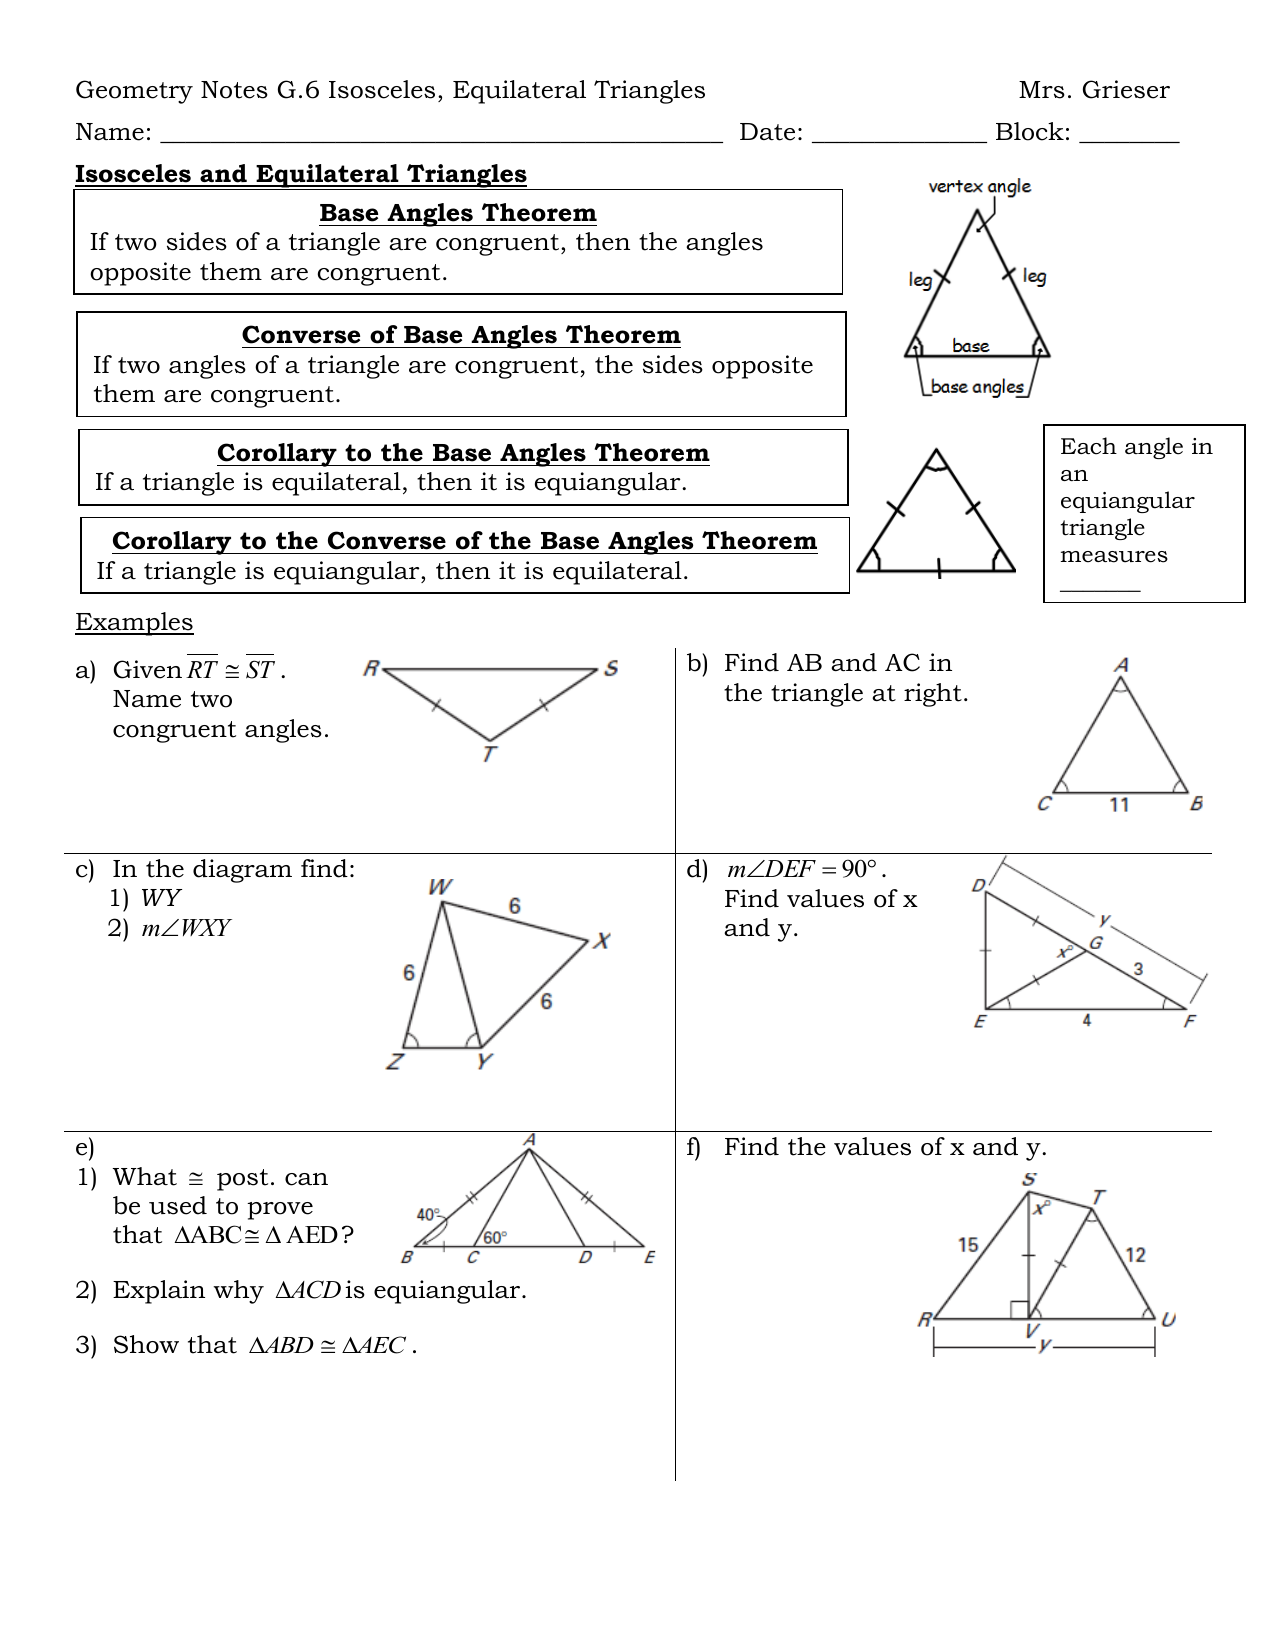 Geometry Notes G6 Isosceles Equilateral Triangles Mrs Grieser